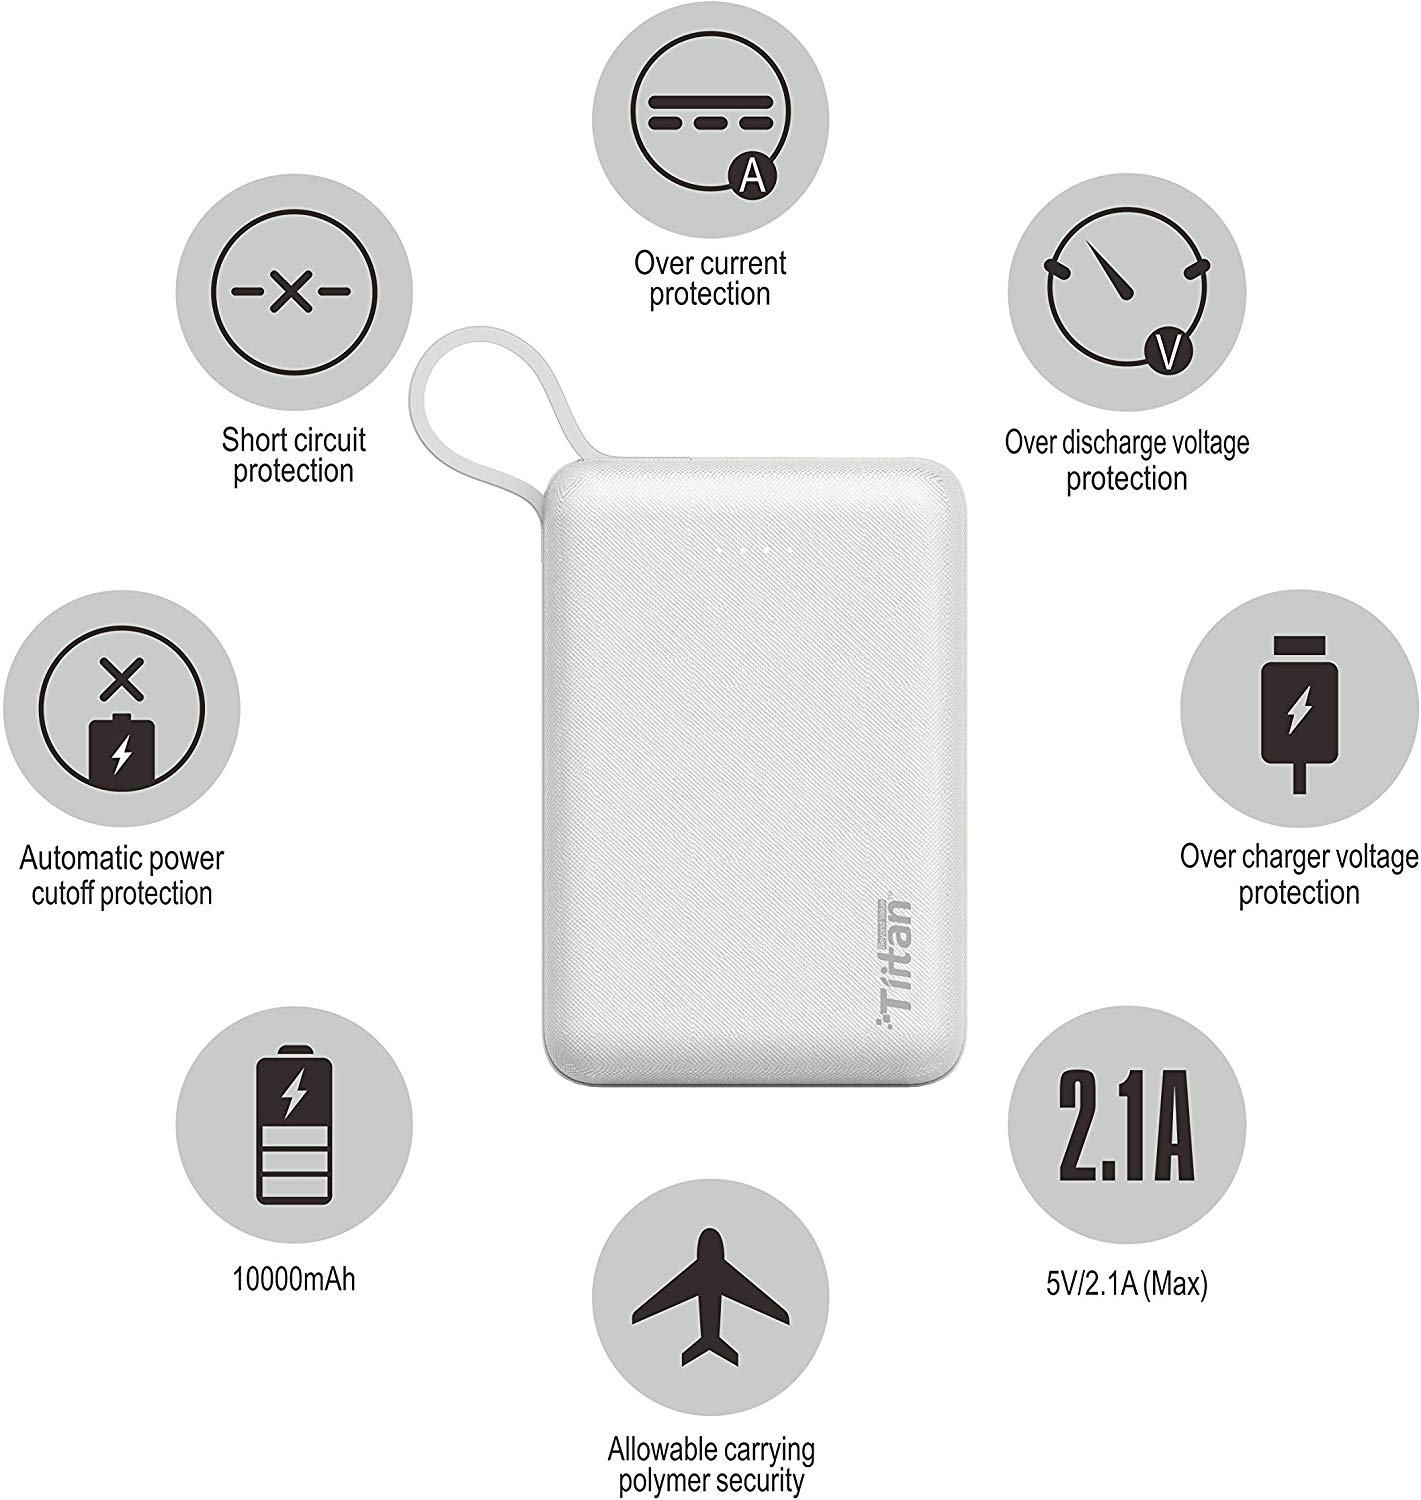 Tiitan 10000mAh Li-Poly with Apple Certified MFi Charging & Syncing Cable for iPhone Power Bank/P15 Handy - White